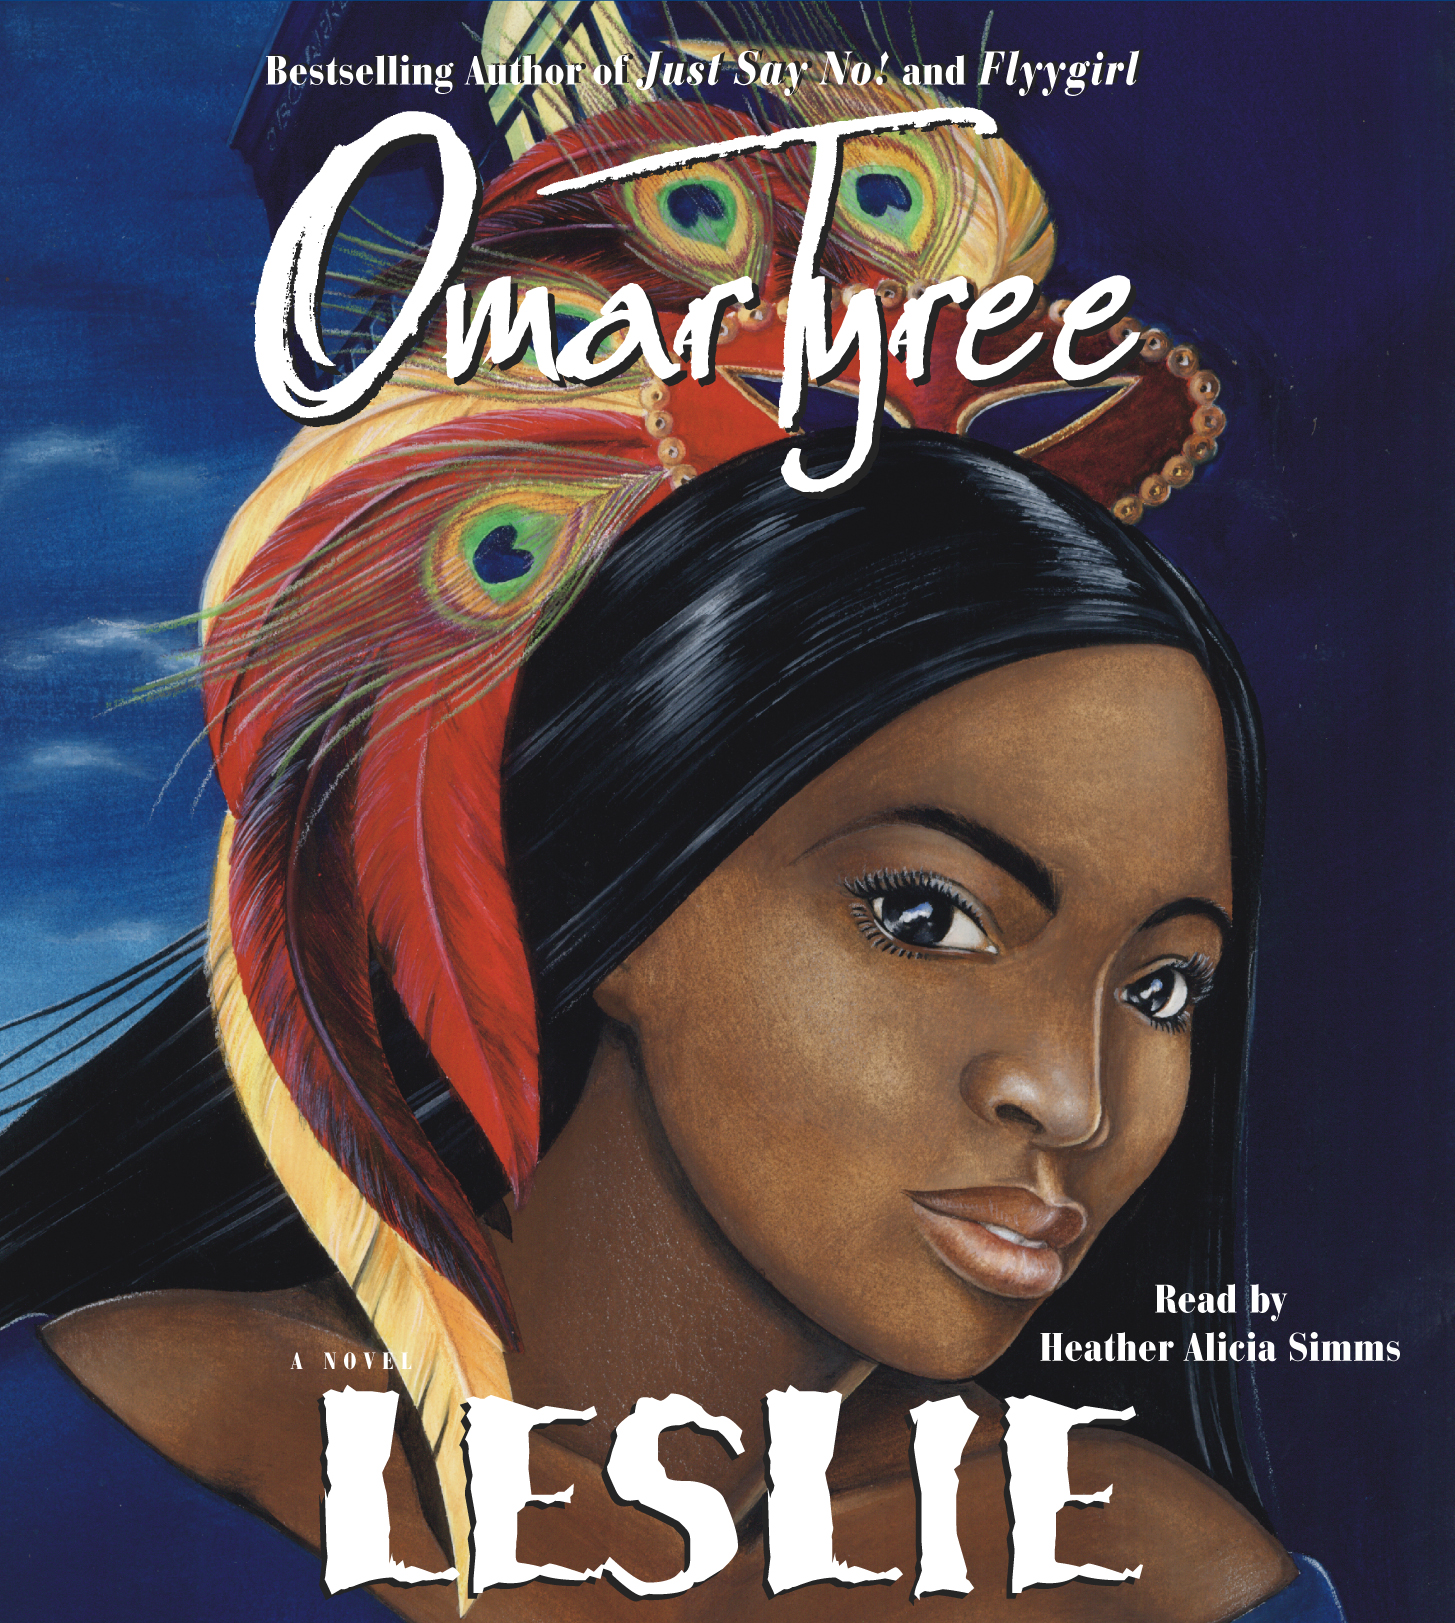 Leslie Audiobook by Omar Tyree, Heather Alicia Simms | Official